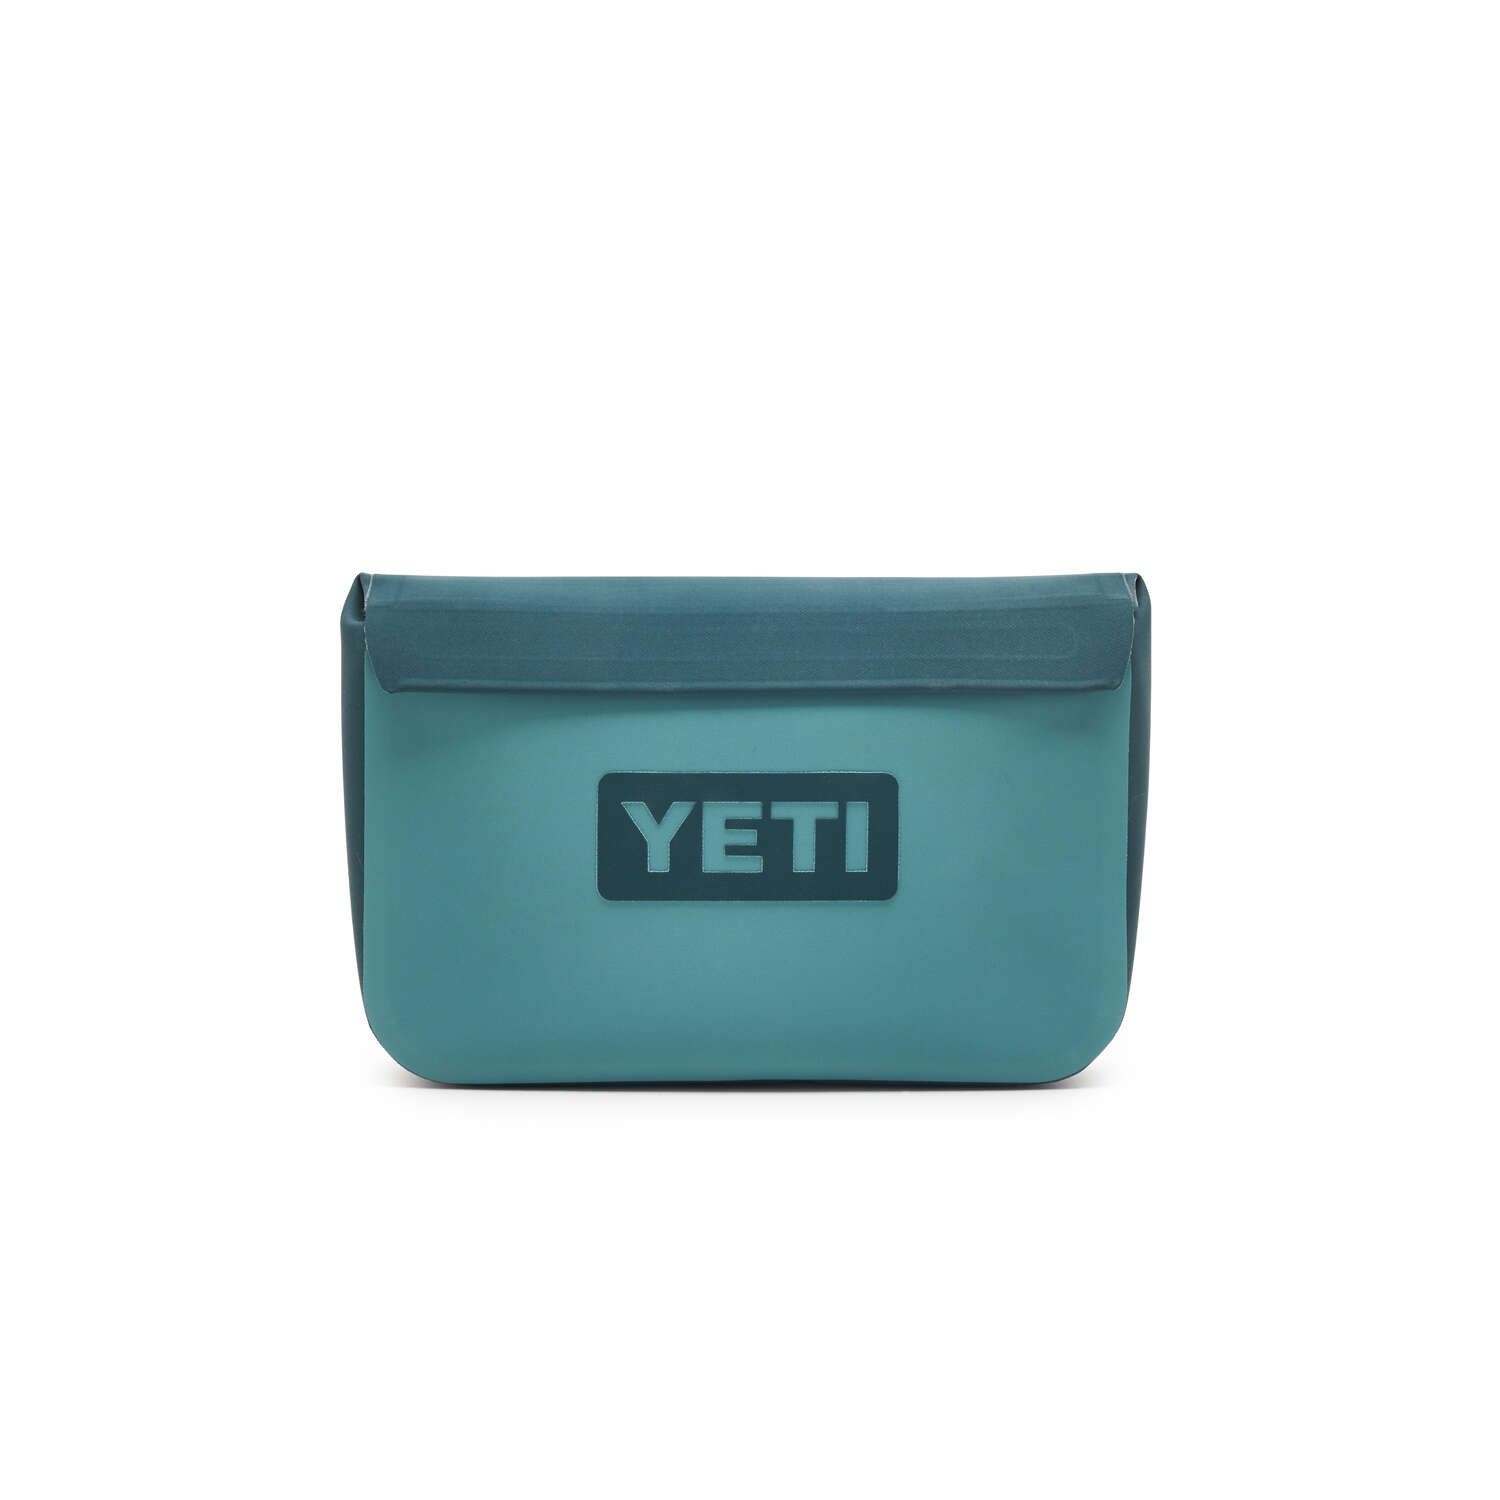 YETI  Sidekick  Dry Case  River Green  1 pk